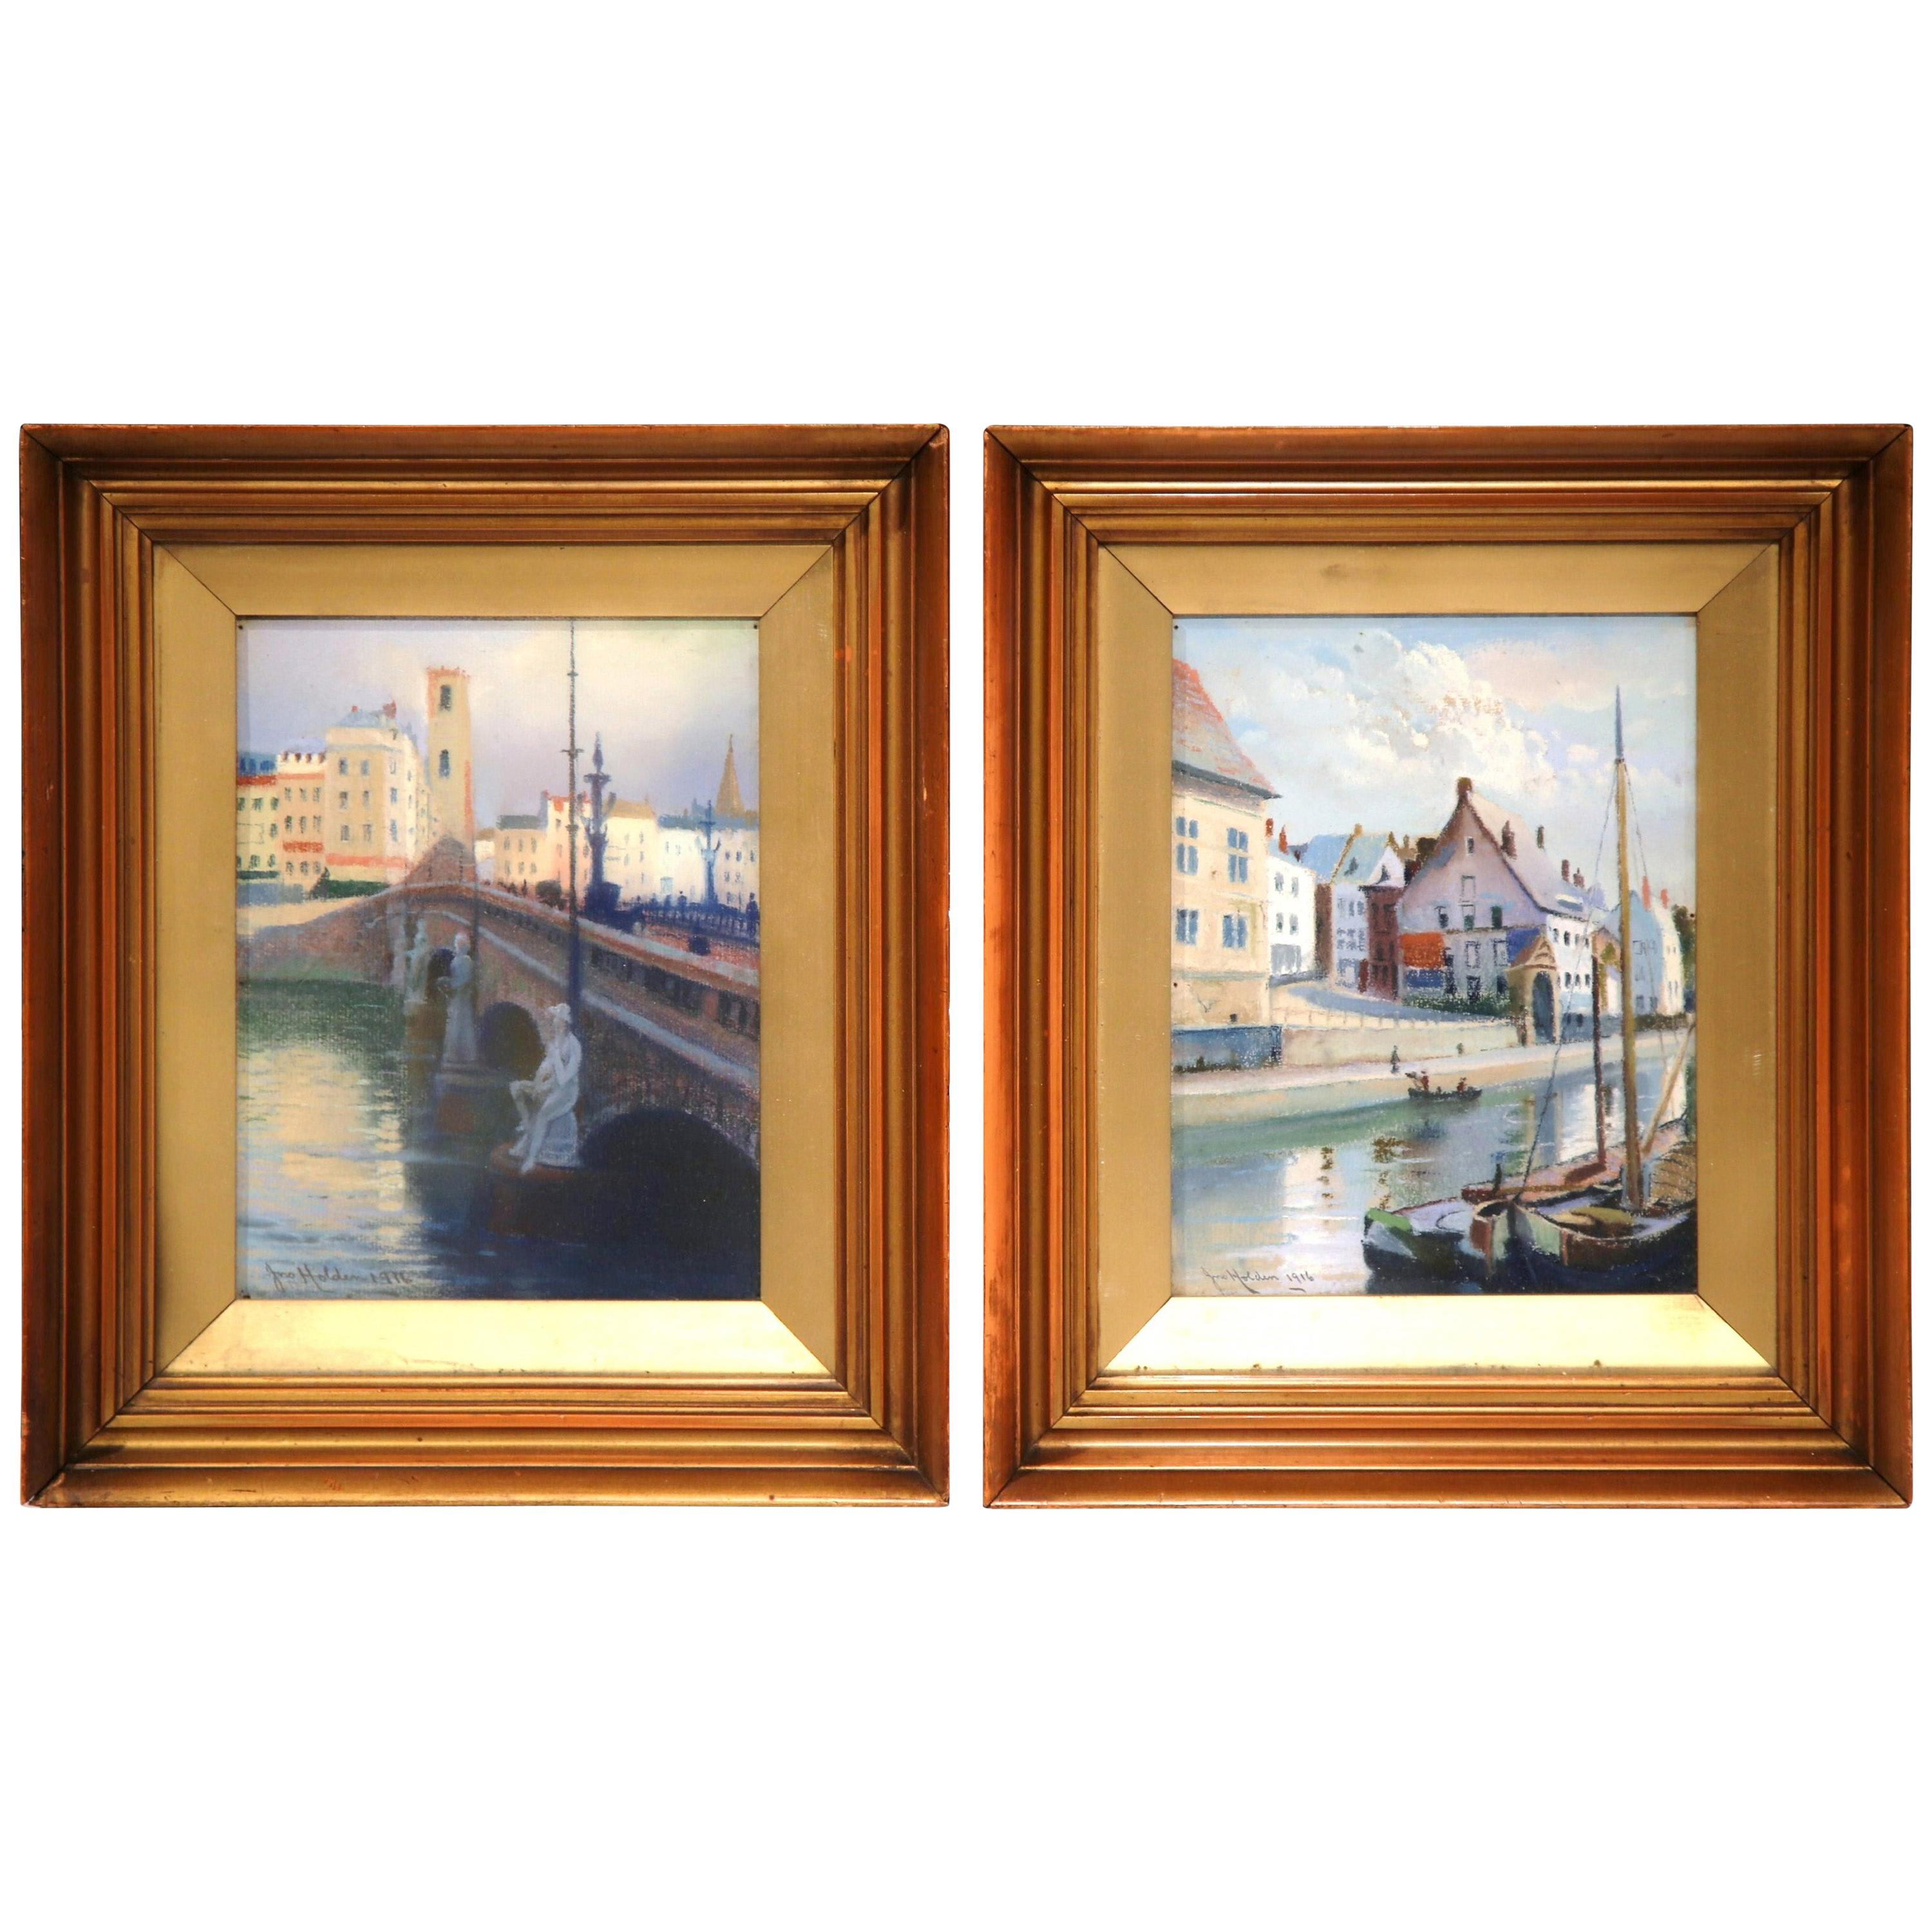 Pair of Early 20th Century English Framed Watercolors Signed Holden Dated 1916